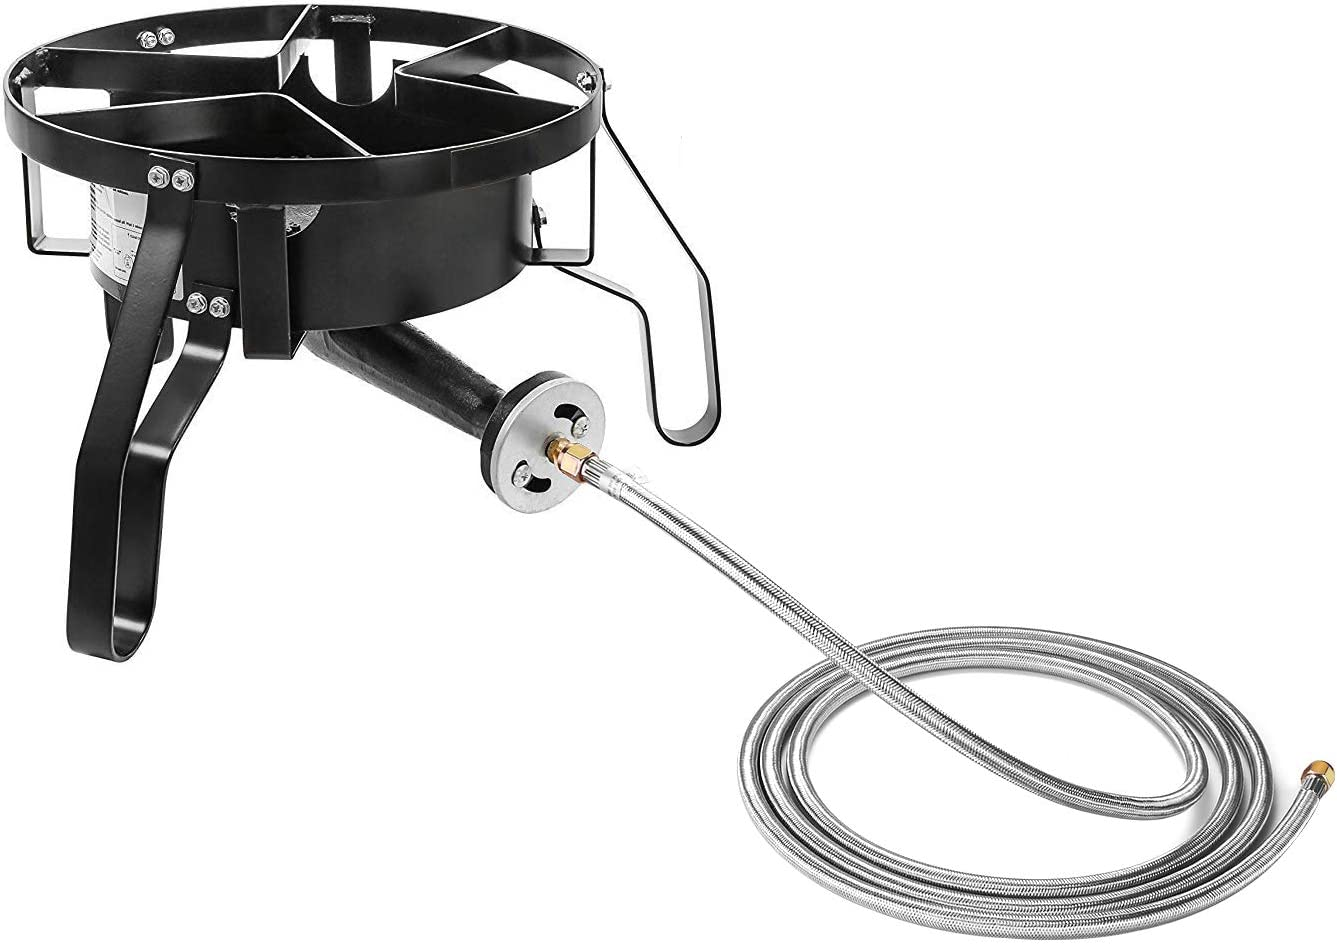 WADEO 12 Foot Propane Hose Assembly,